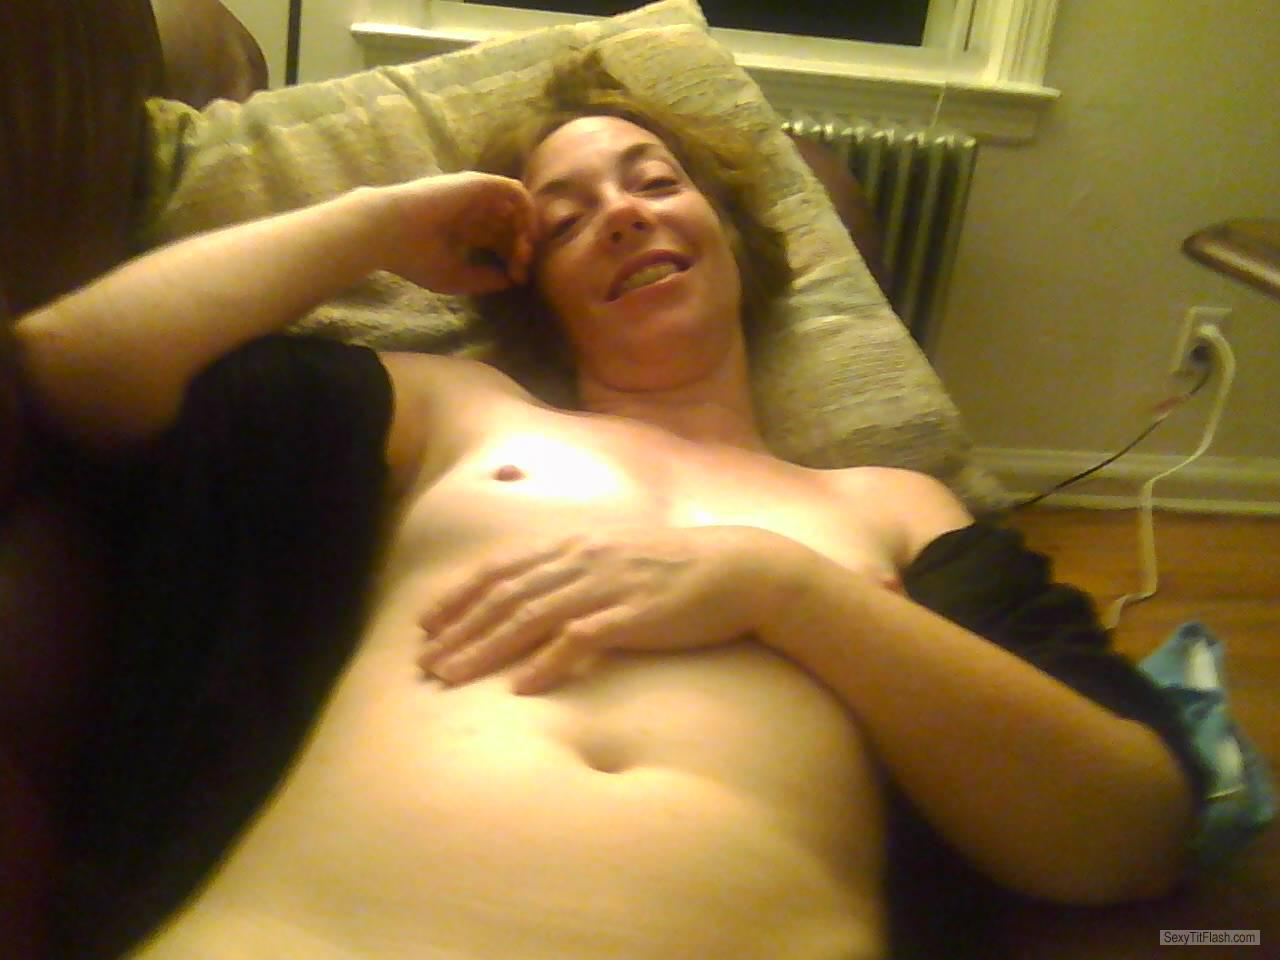 Tit Flash: Wife's Small Tits - Topless Addie from United States